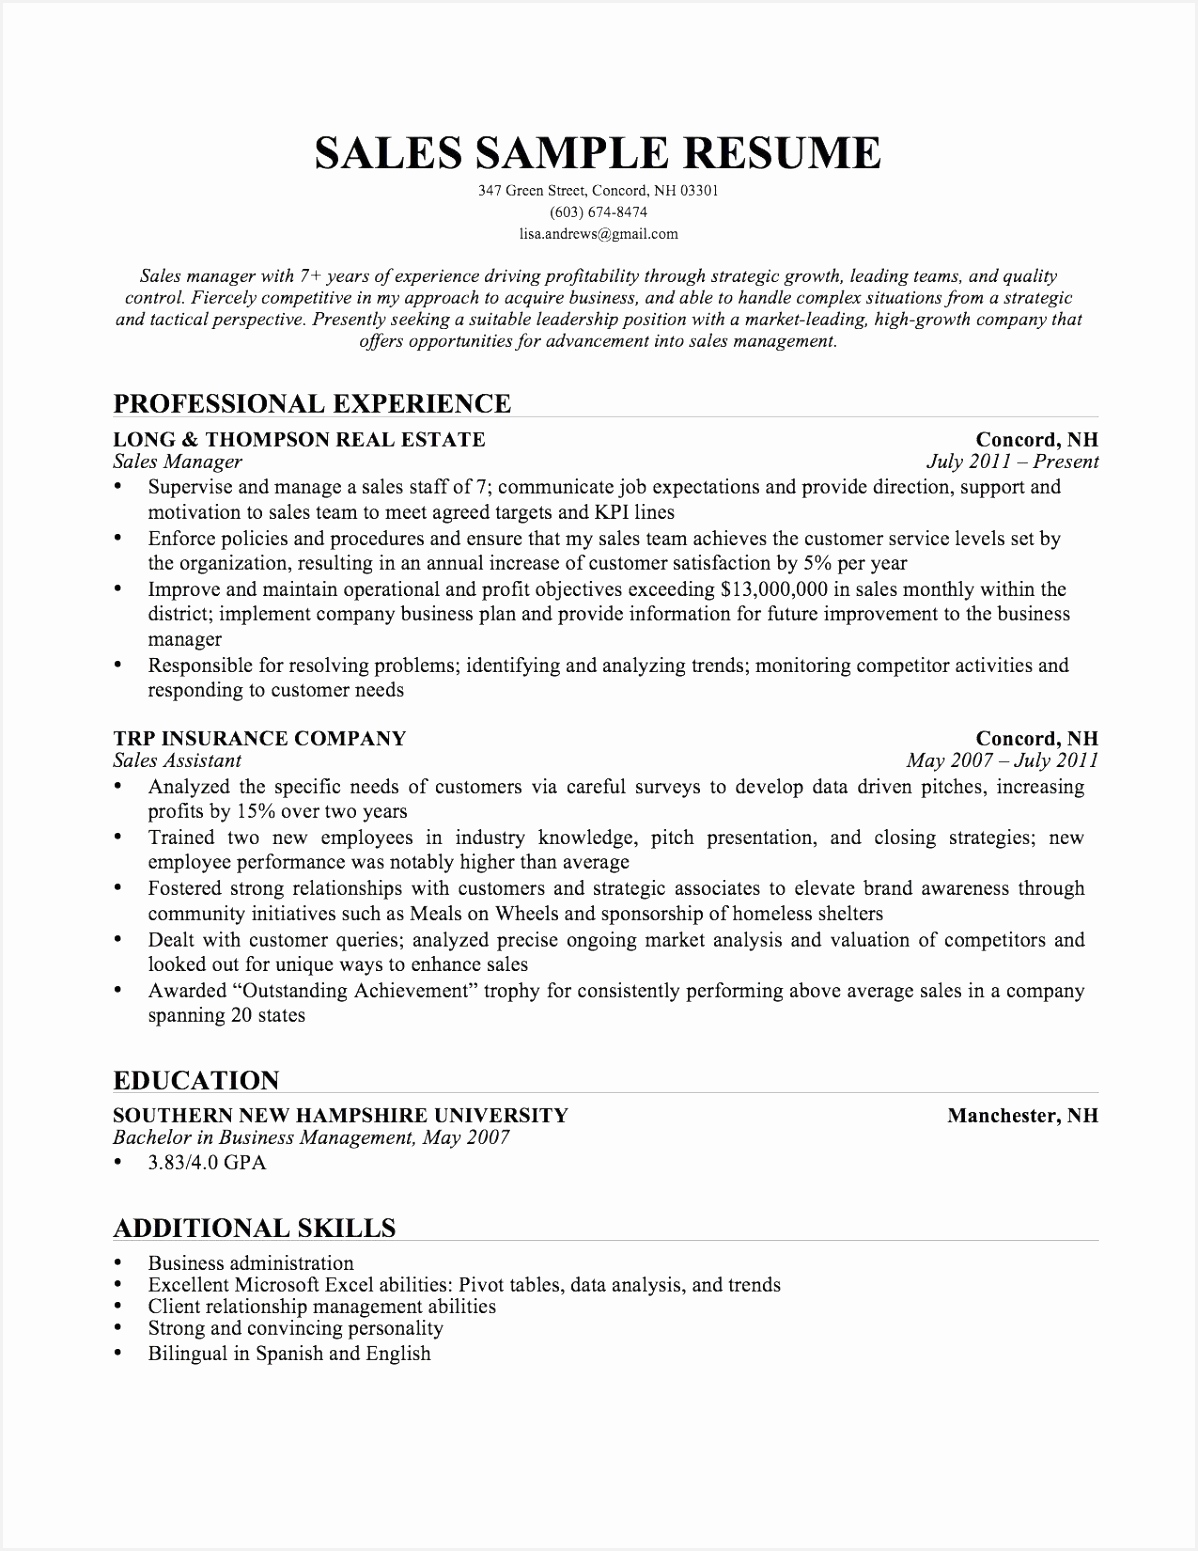 Resume Performa Ydagd Best Of Resume Sample for High School Student Archives Wattweiler org New Of Resume Performa Bezcu Elegant Data Entry Resume Sample Inspirational 30 Professional Resume format